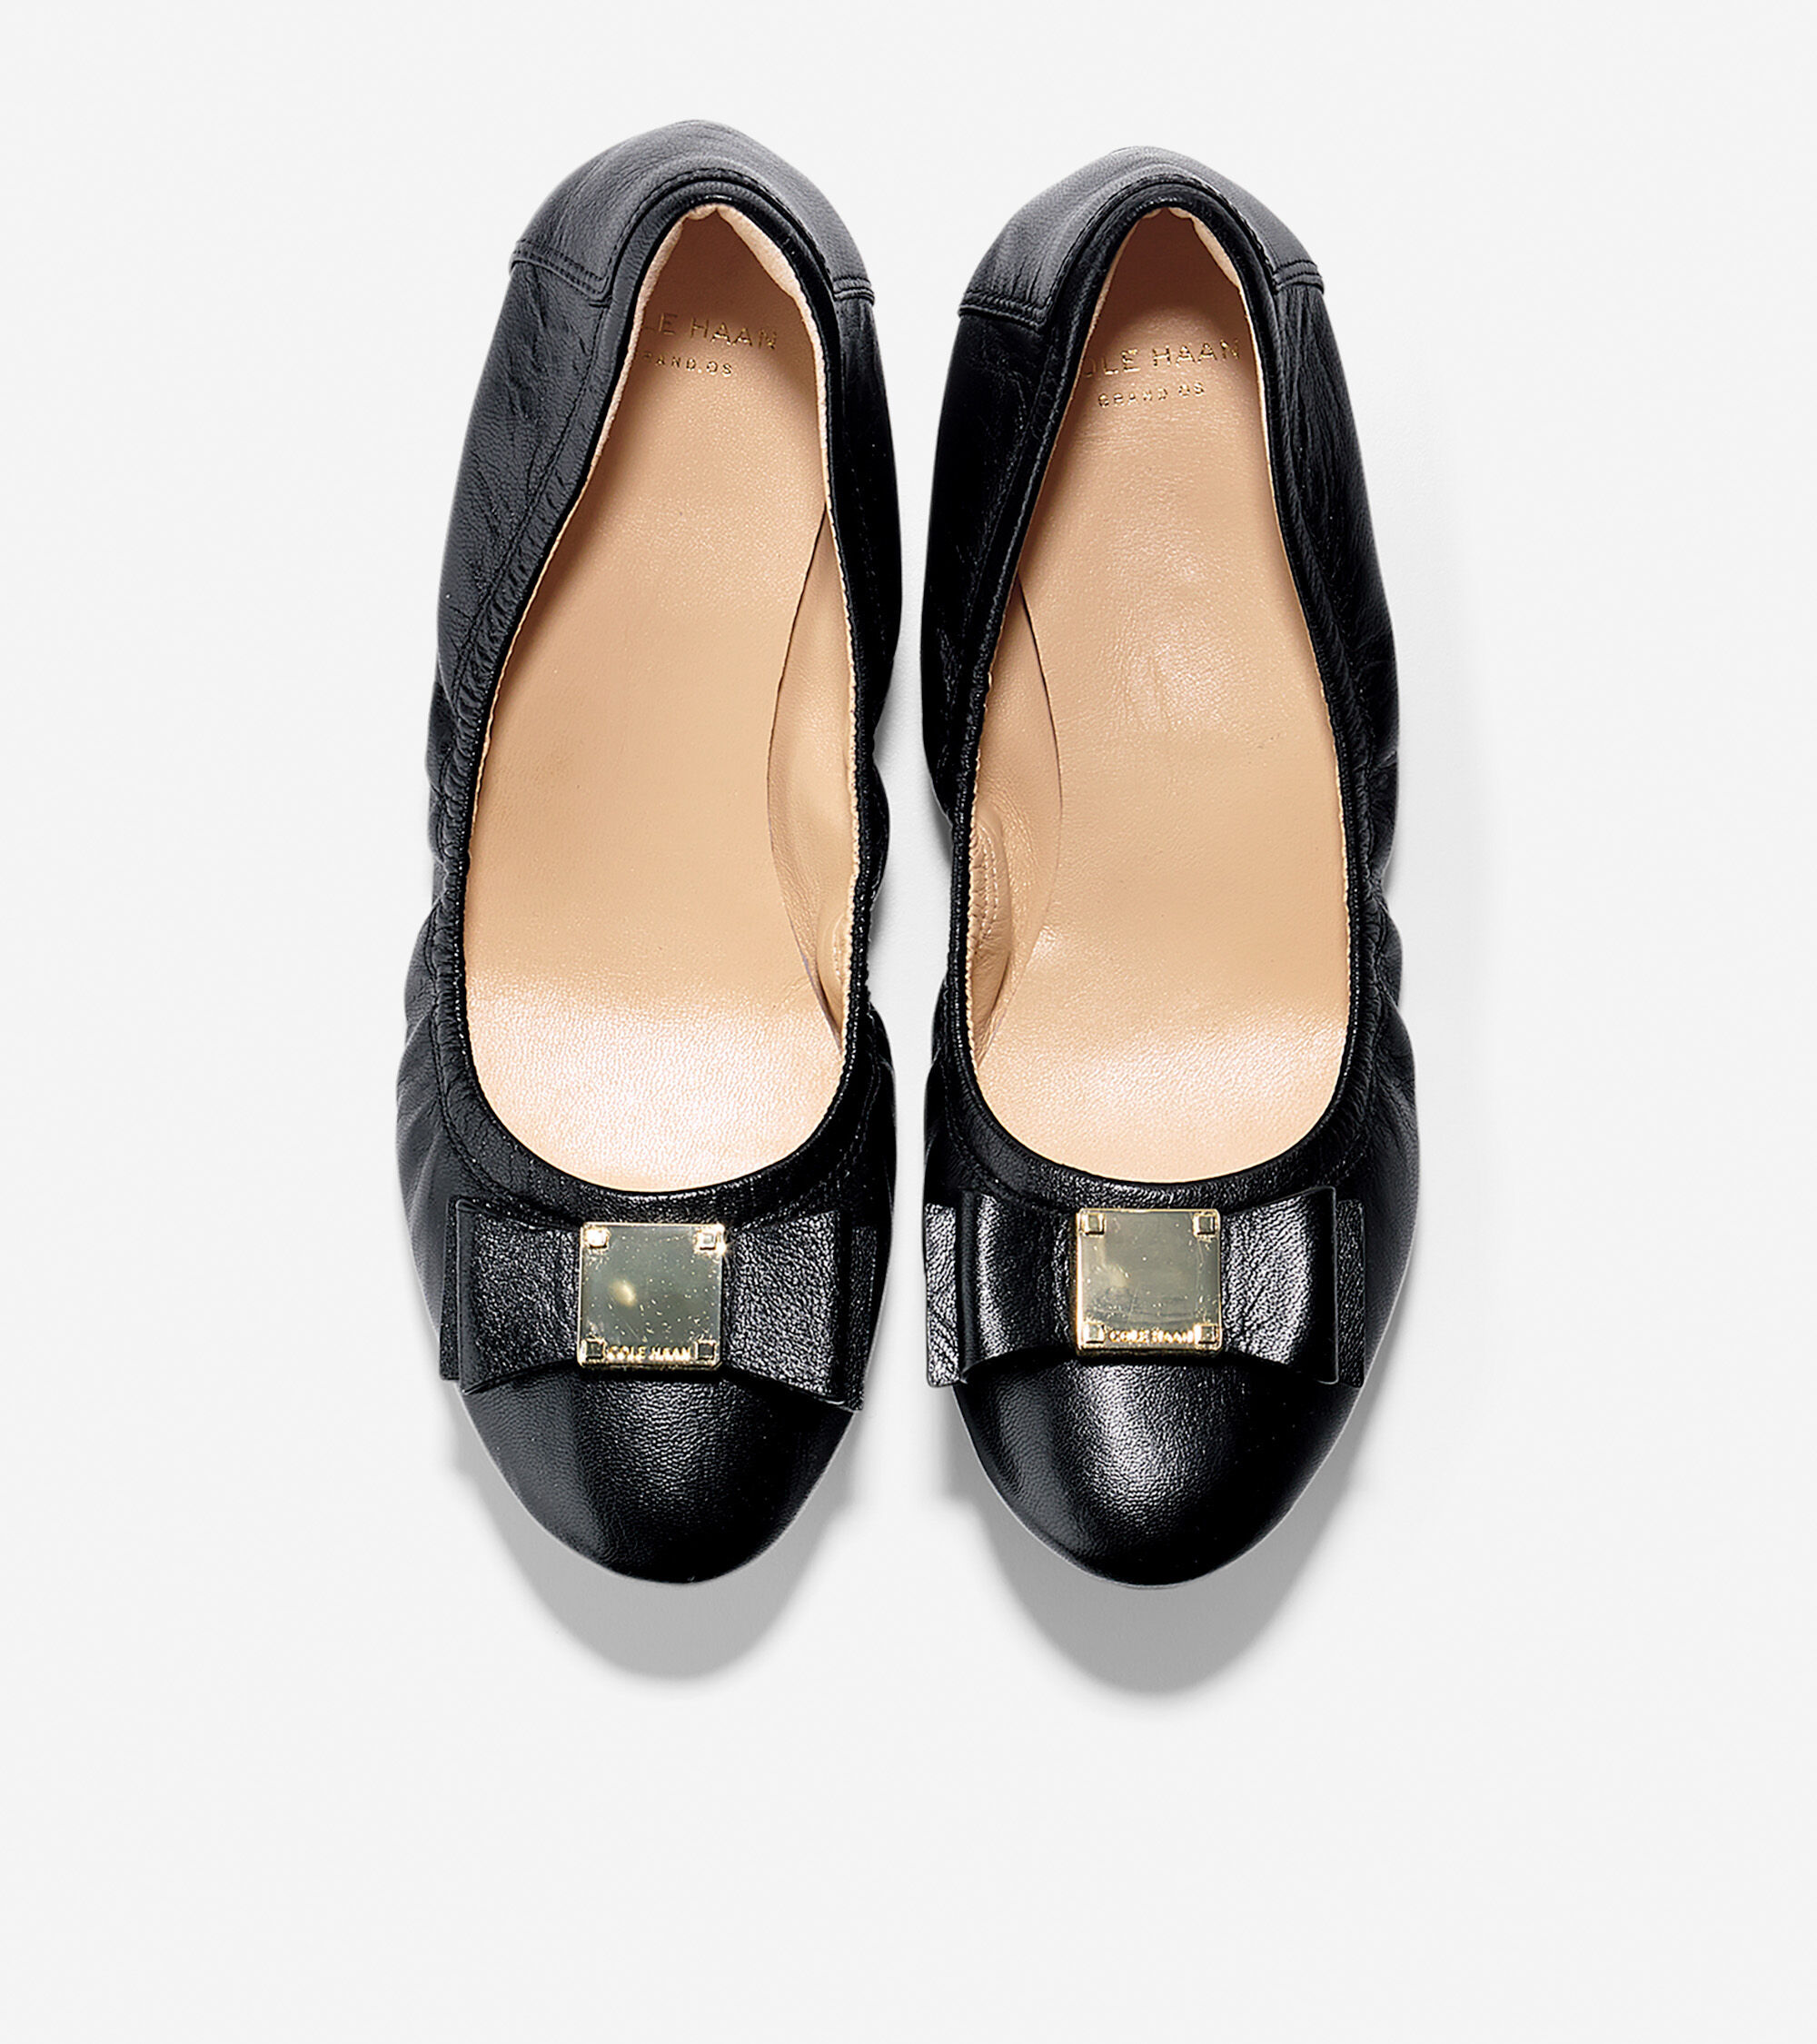 Popular Online Cole Haan Tali Flex Ballet Flats Clearance Lowest Price Clearance Ebay v8rHG5n